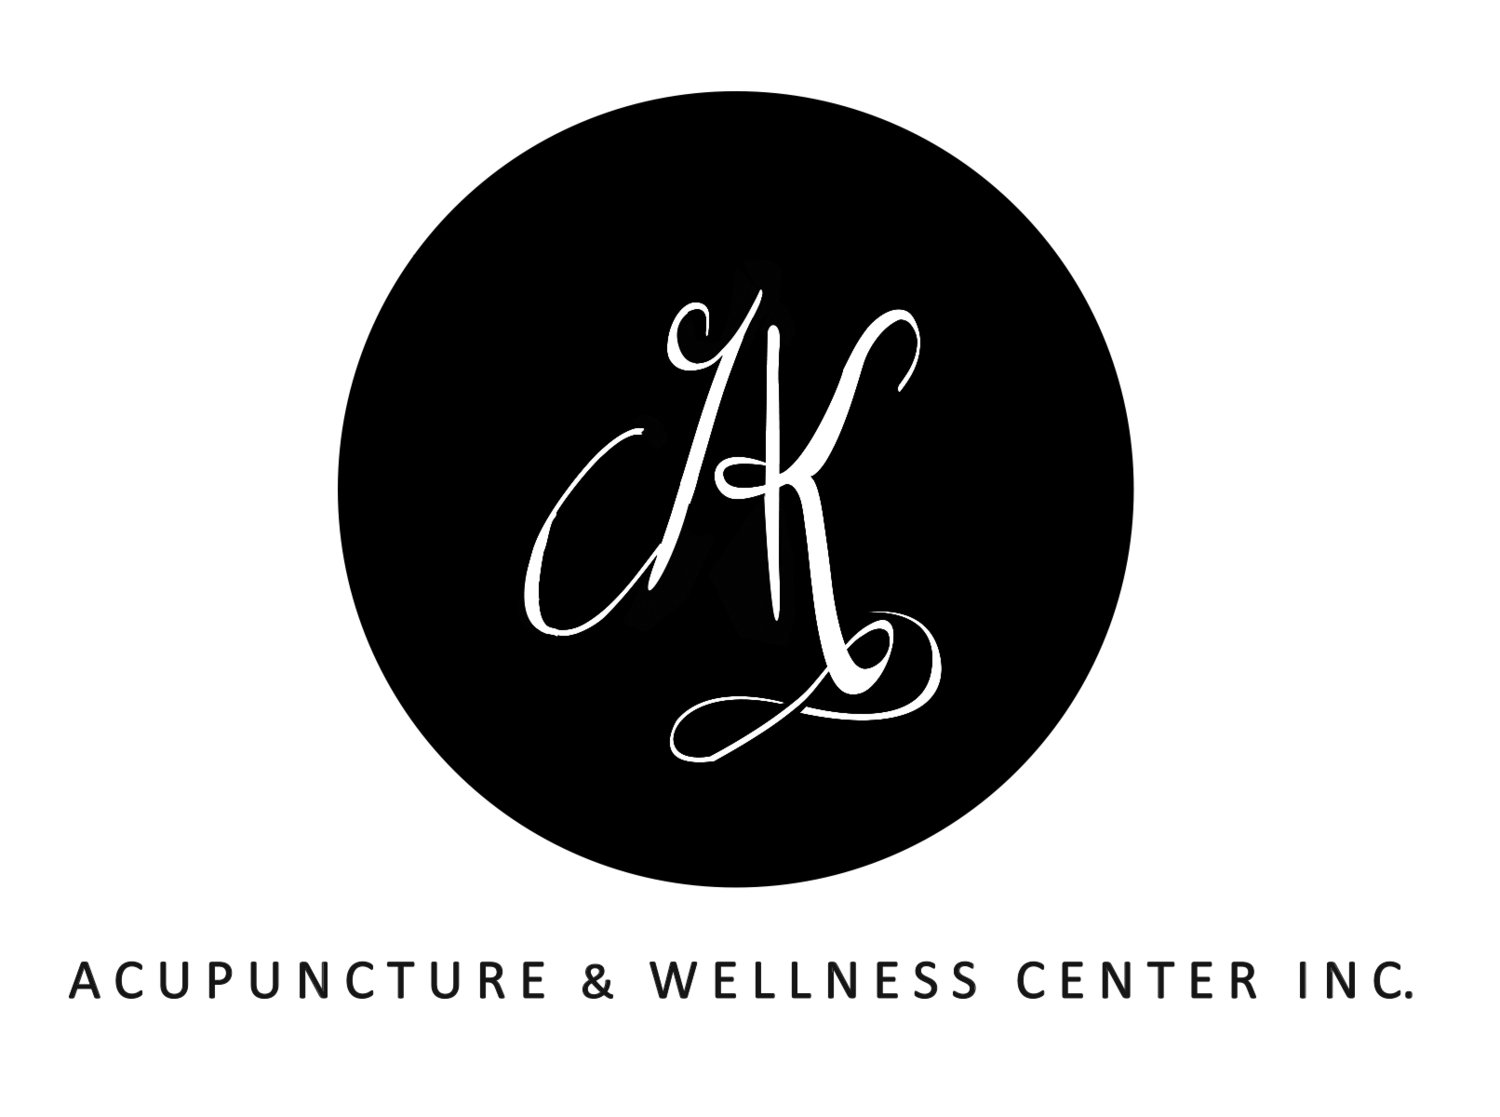 Angela Kung Acupuncture & Wellness Center